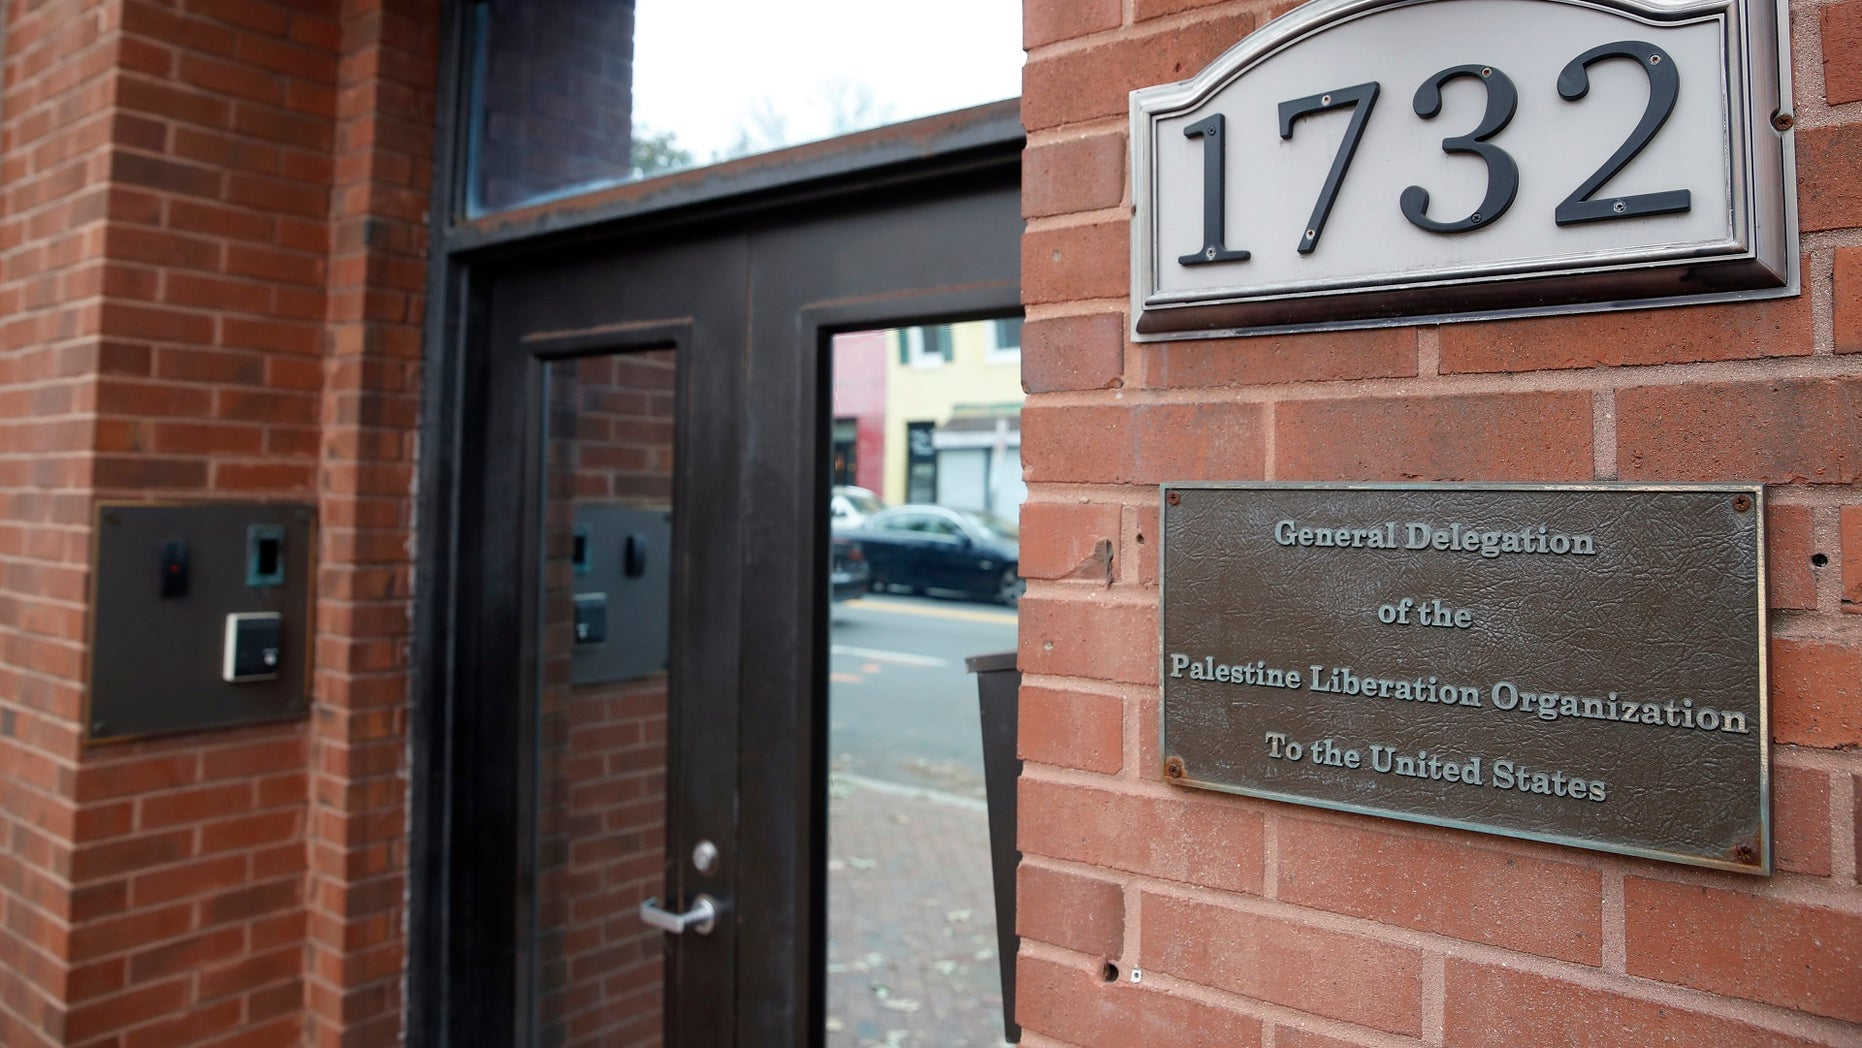 FILE- This Saturday, Nov. 18, 2017, file photo shows the Washington office of the Palestine Liberation Organization. Last week, U.S. officials said the Palestine Liberation Organization mission in Washington had to close because the Palestinians had violated a provision in U.S. law. But the State Department said Friday, Nov. 24, that the office can stay open, with restrictions. (AP Photo/Alex Brandon, File)